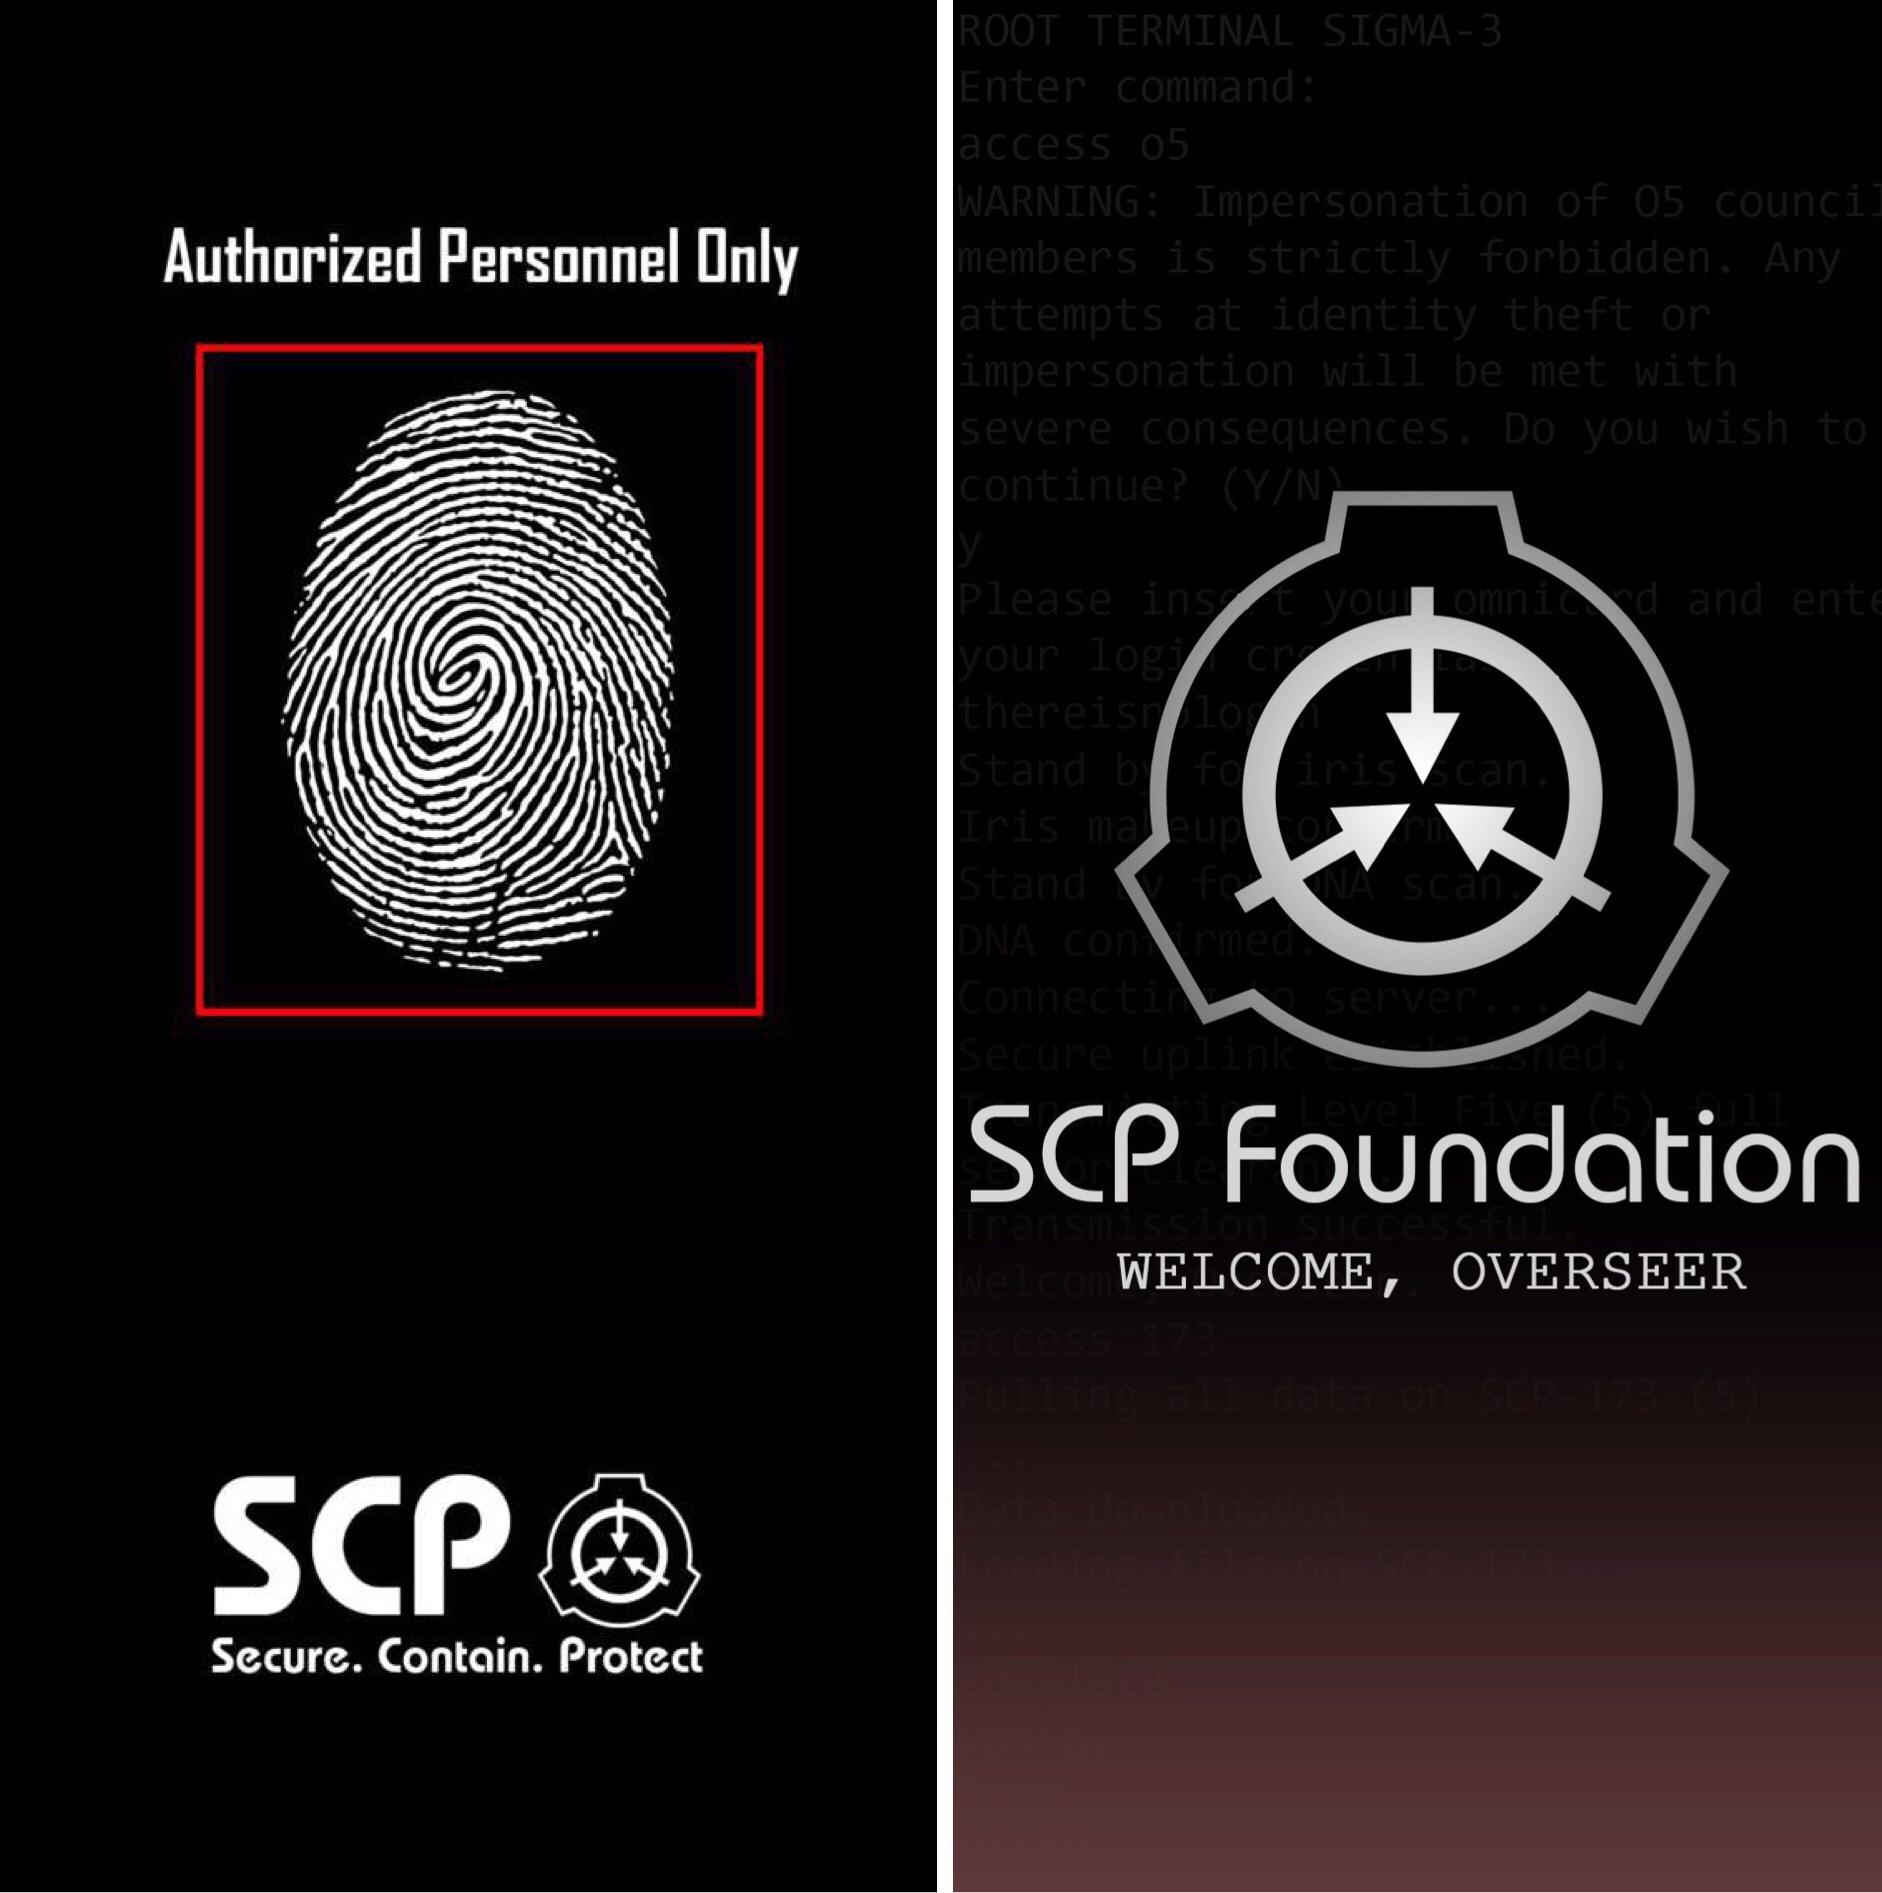 Scp Oboi Na Telefon Scp Foundation Wallpaper Phone 3208471 Hd Wallpaper Backgrounds Download